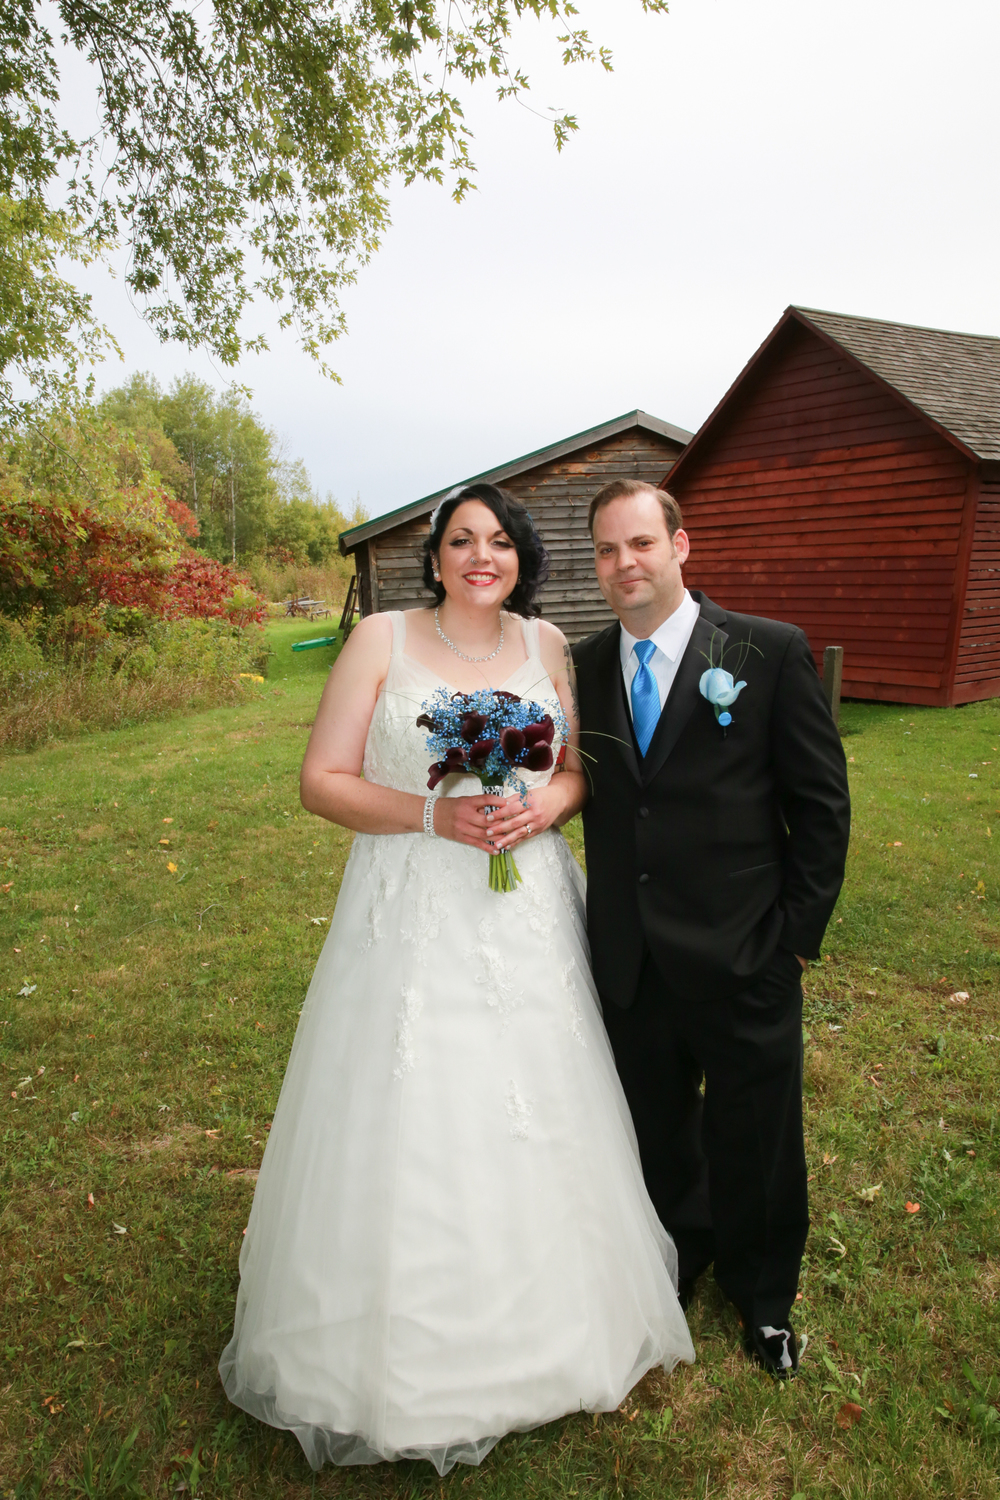 Wedding at Mabee Farm Historic Site